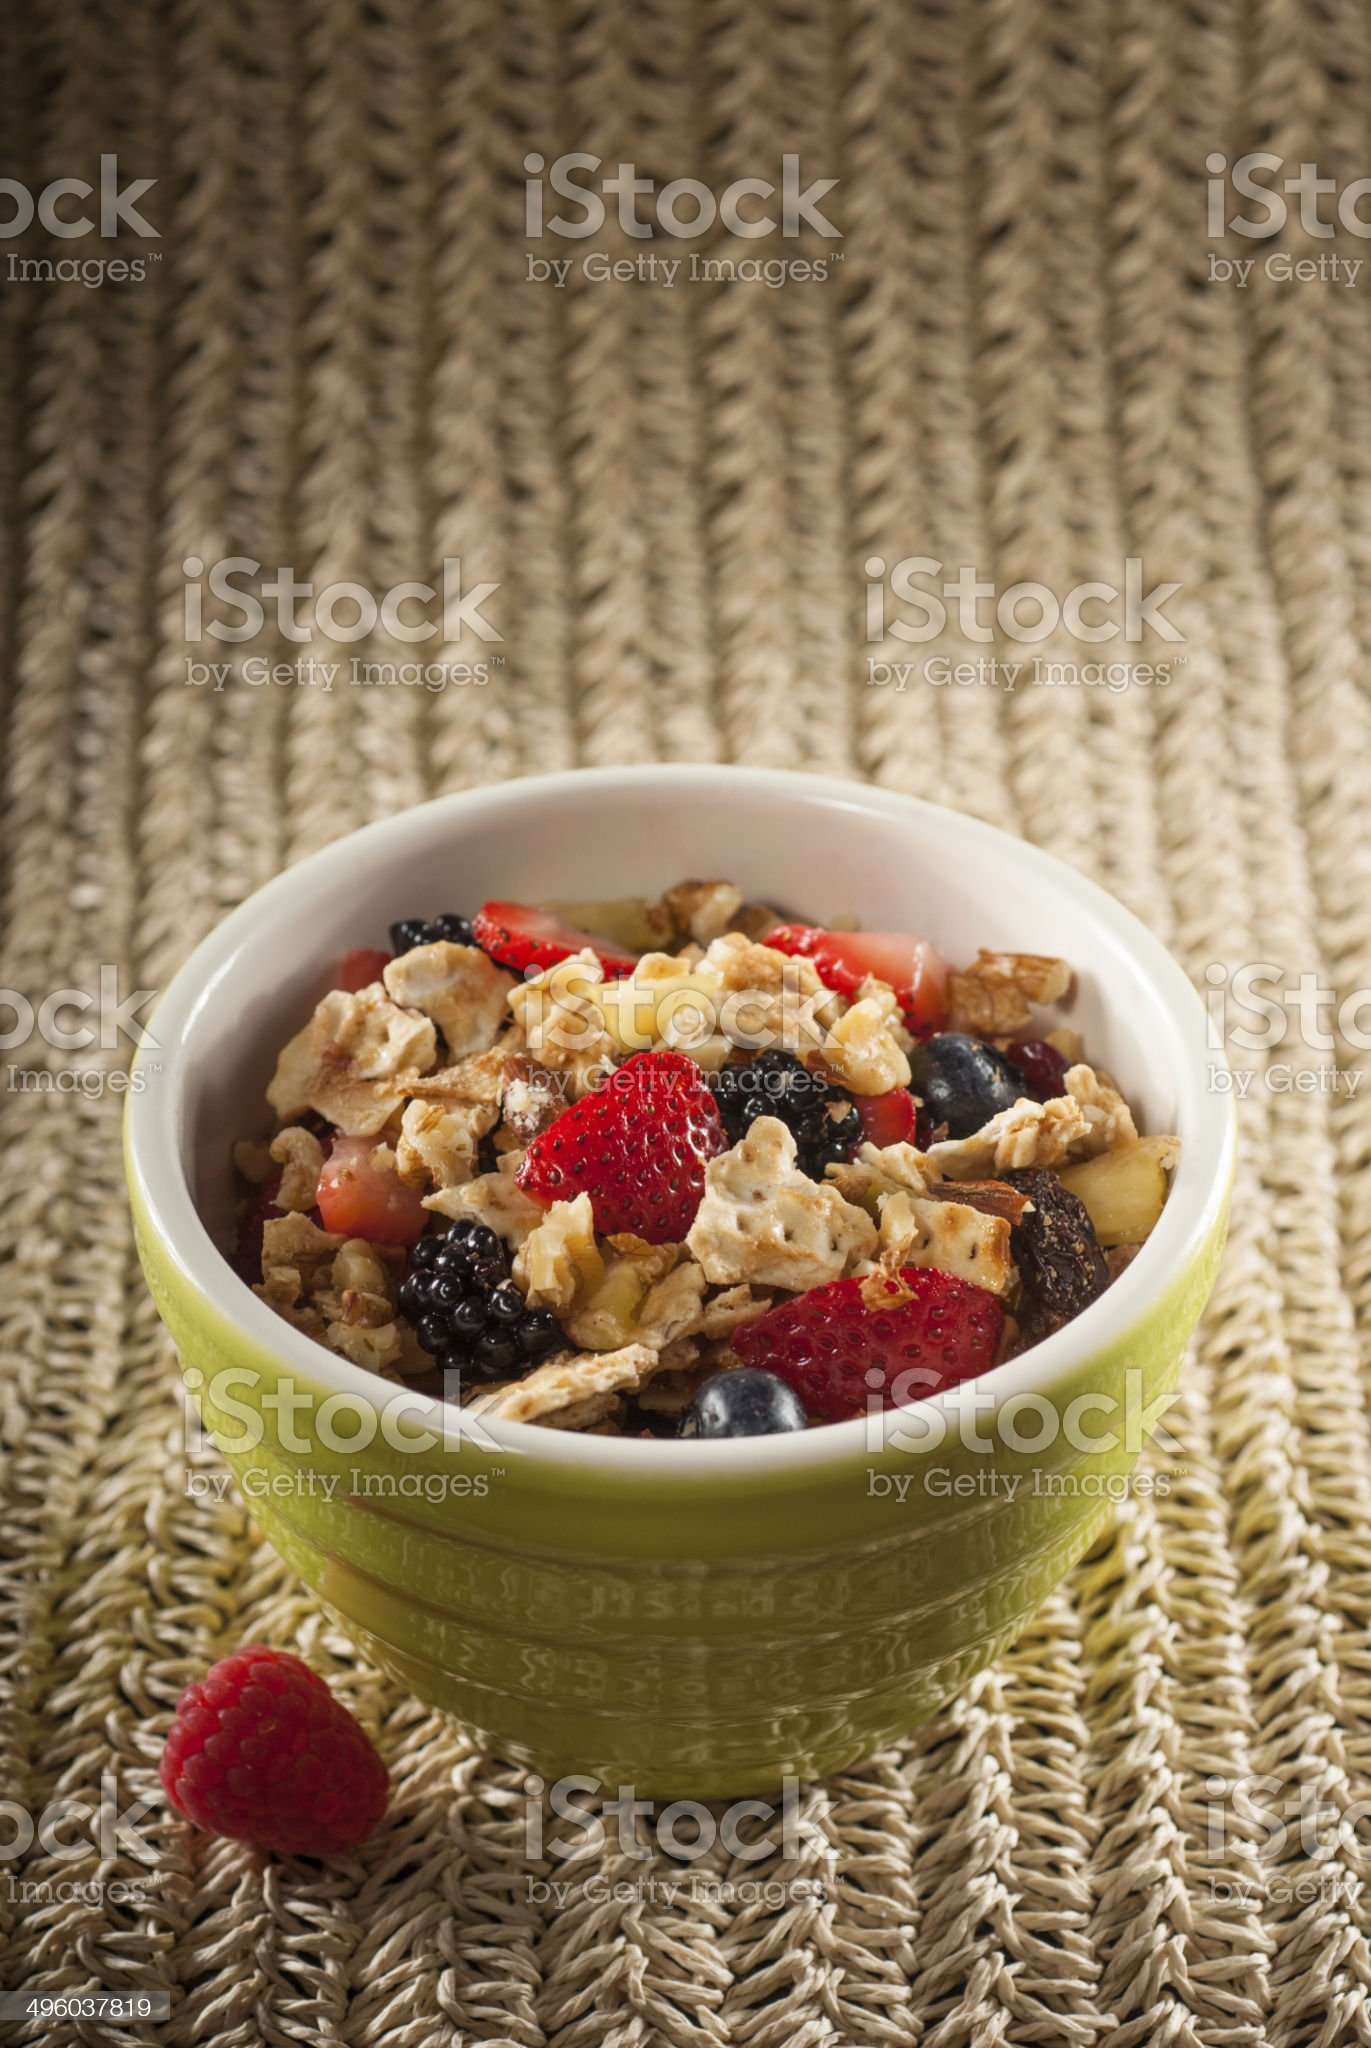 Bowl of Nuts and Berries Cereal with Matzo royalty-free stock photo